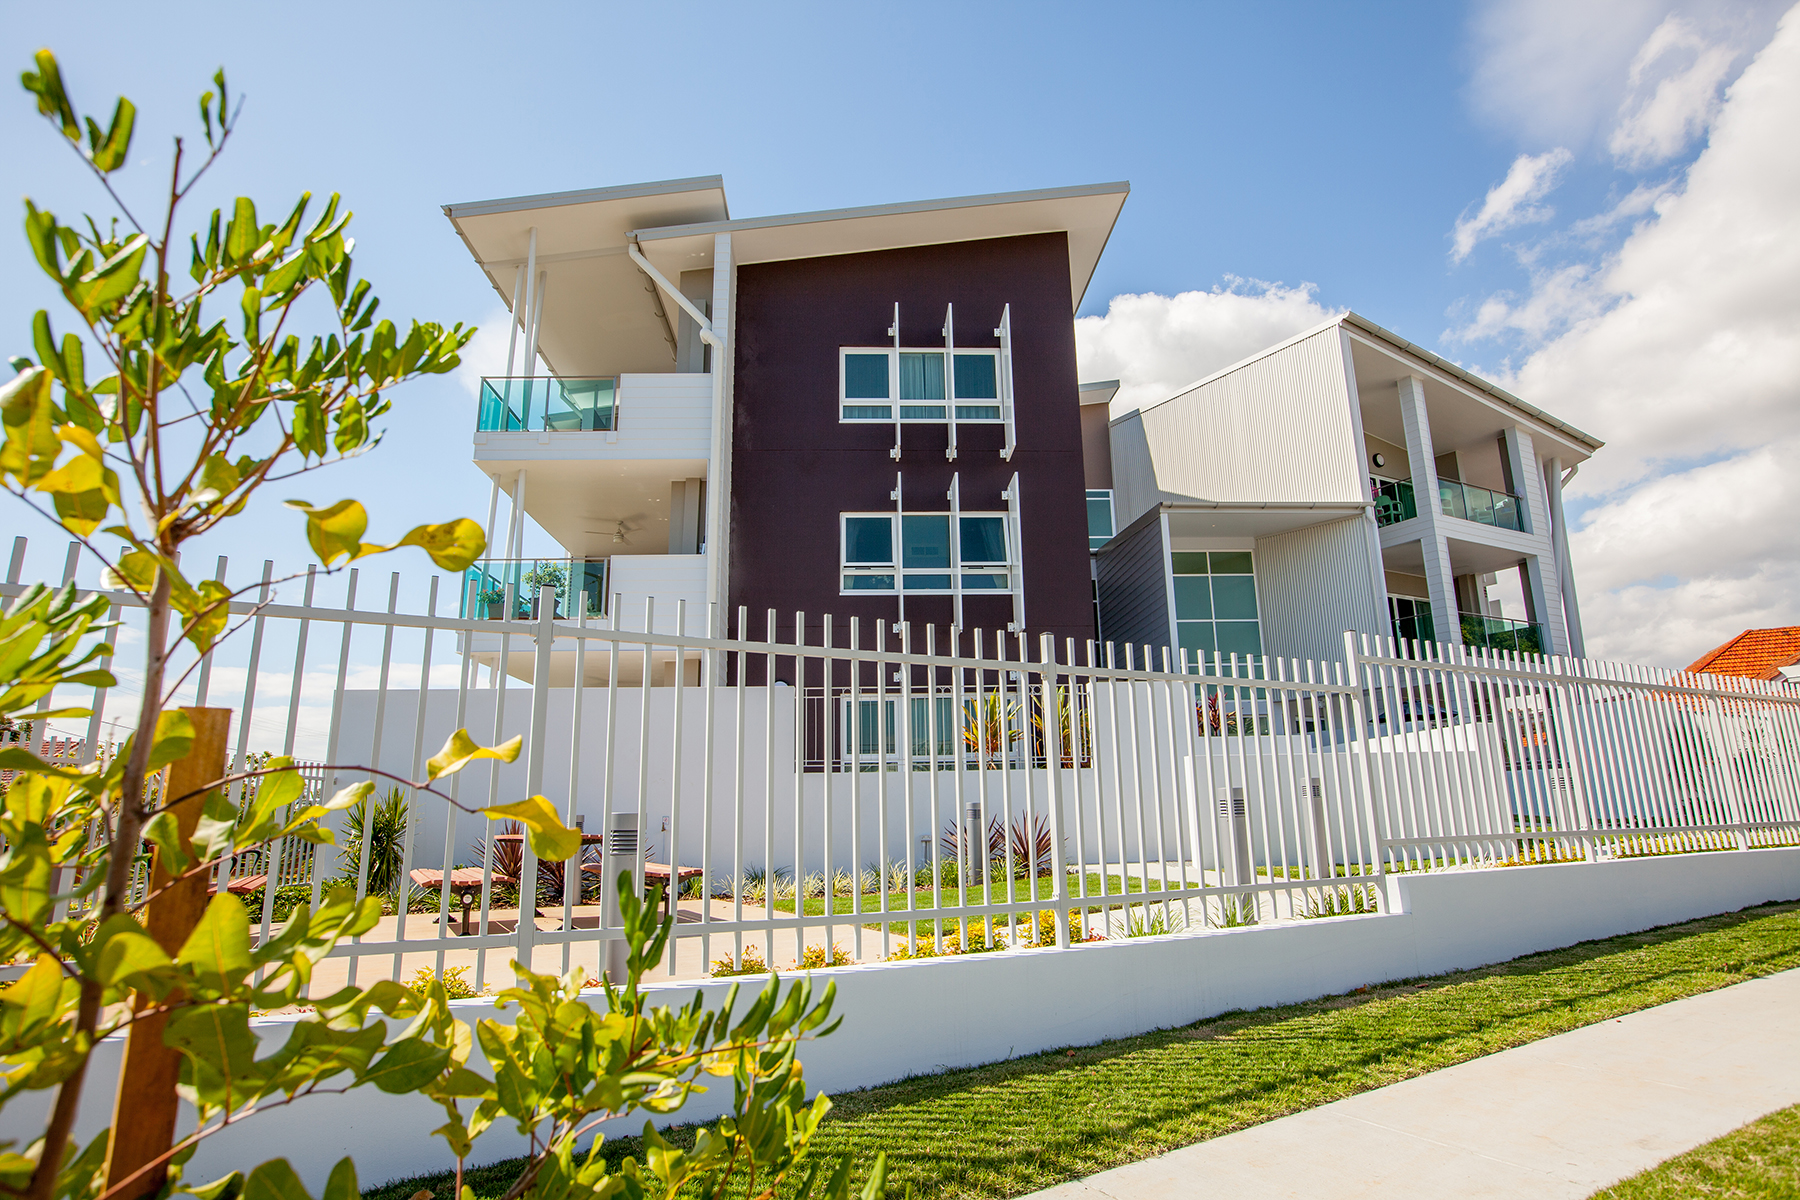 retirement village Retireaustralia owns and operates 27 retirement villages across queensland, new south wales and south australia to promote independent retirement living.